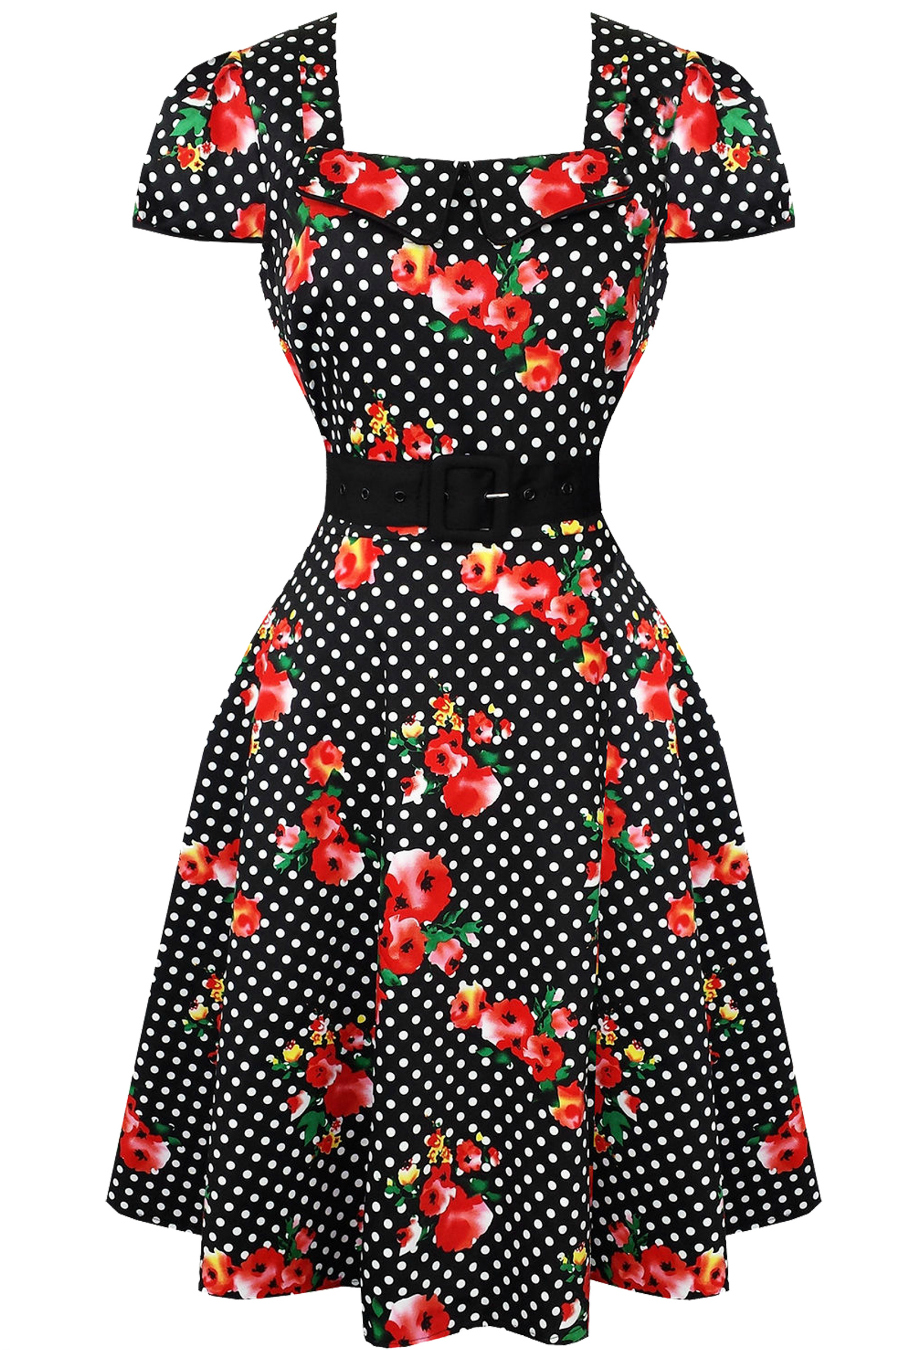 Voodoo Vixen Floral Polka Dot Vintage Dress